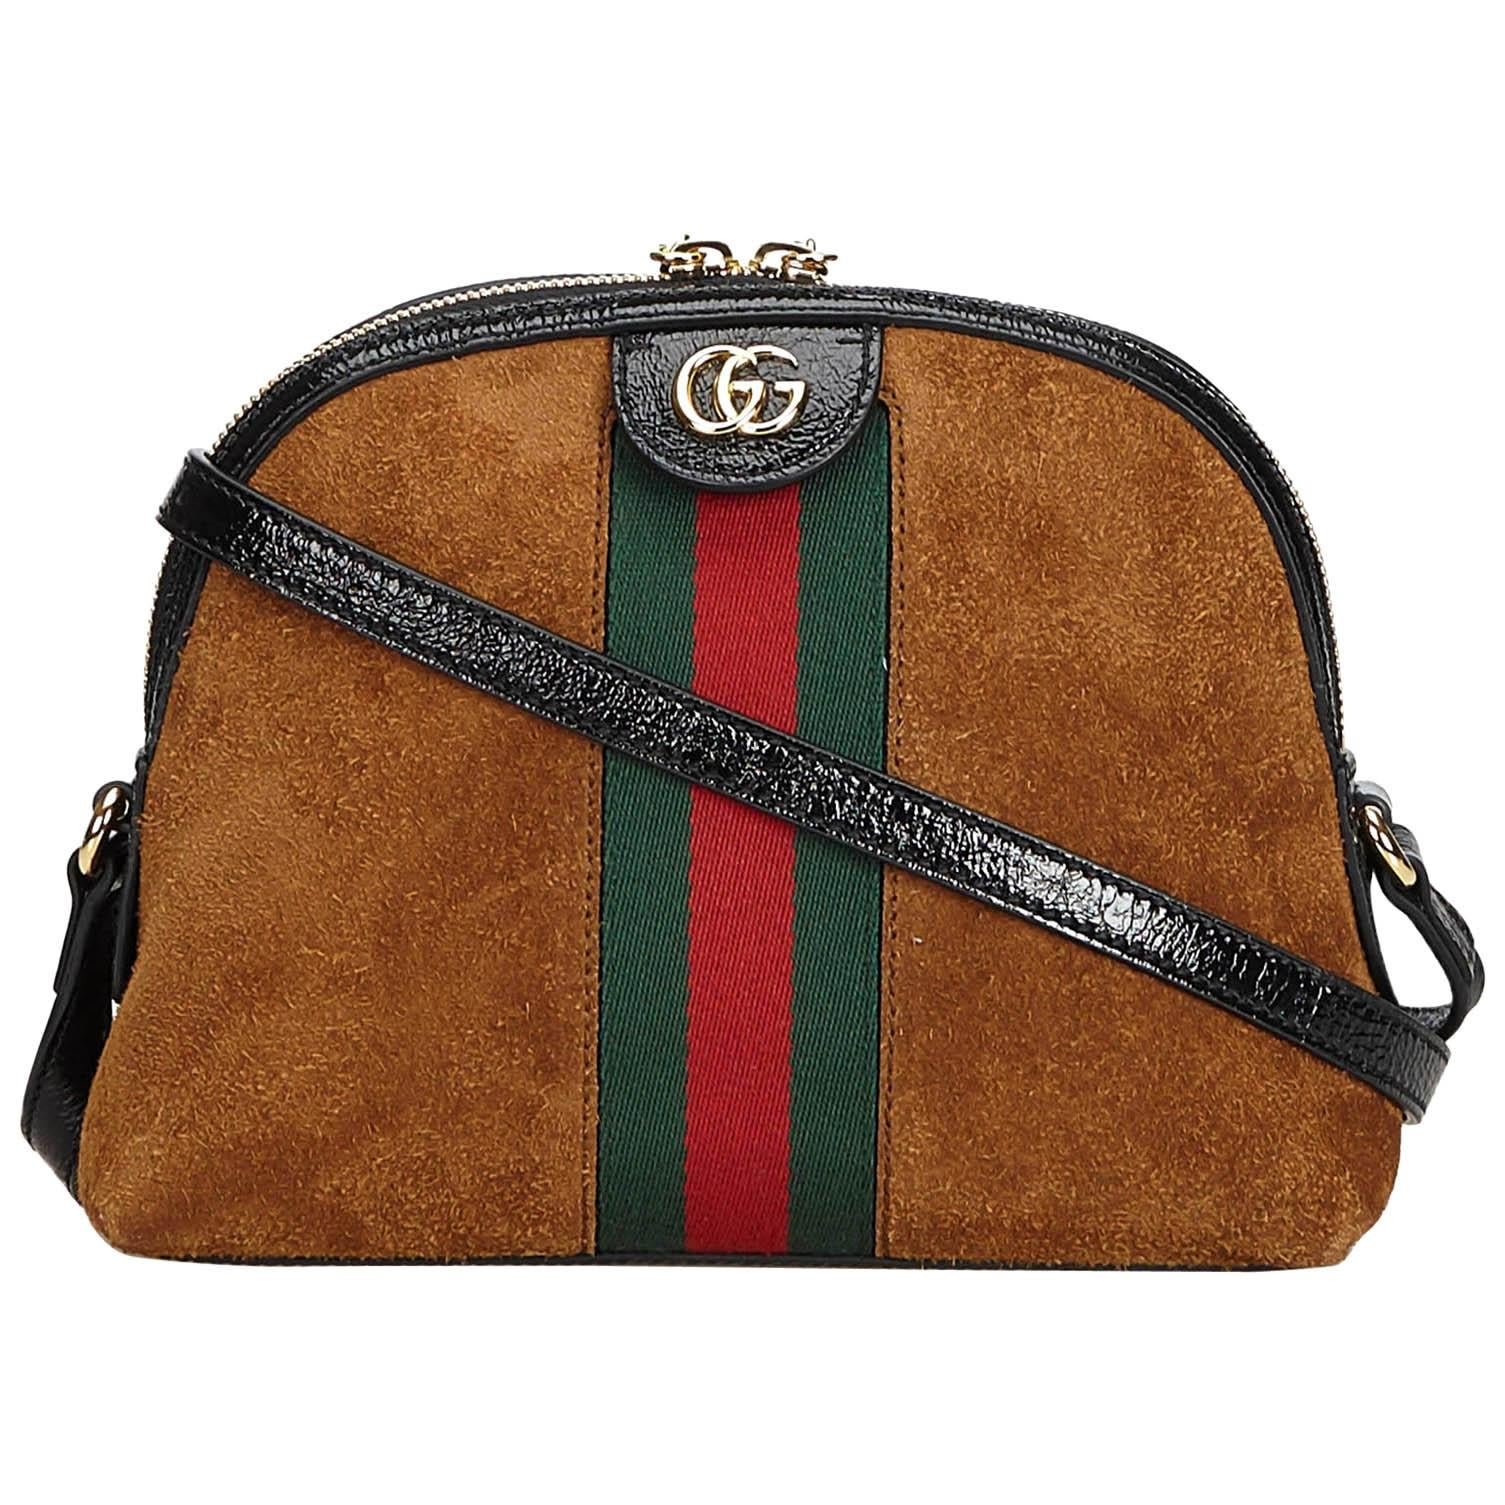 4f4fbe993764a2 Vintage Gucci Handbags and Purses - 2,055 For Sale at 1stdibs